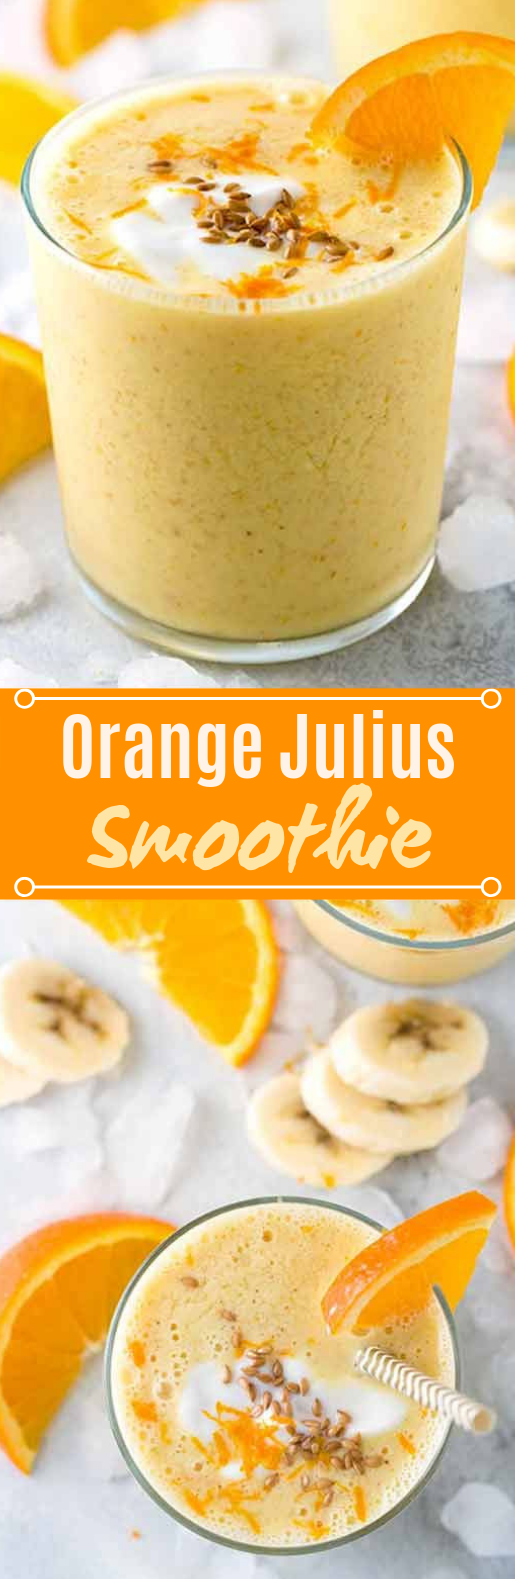 Orange Julius Smoothie #drinks #smoothies